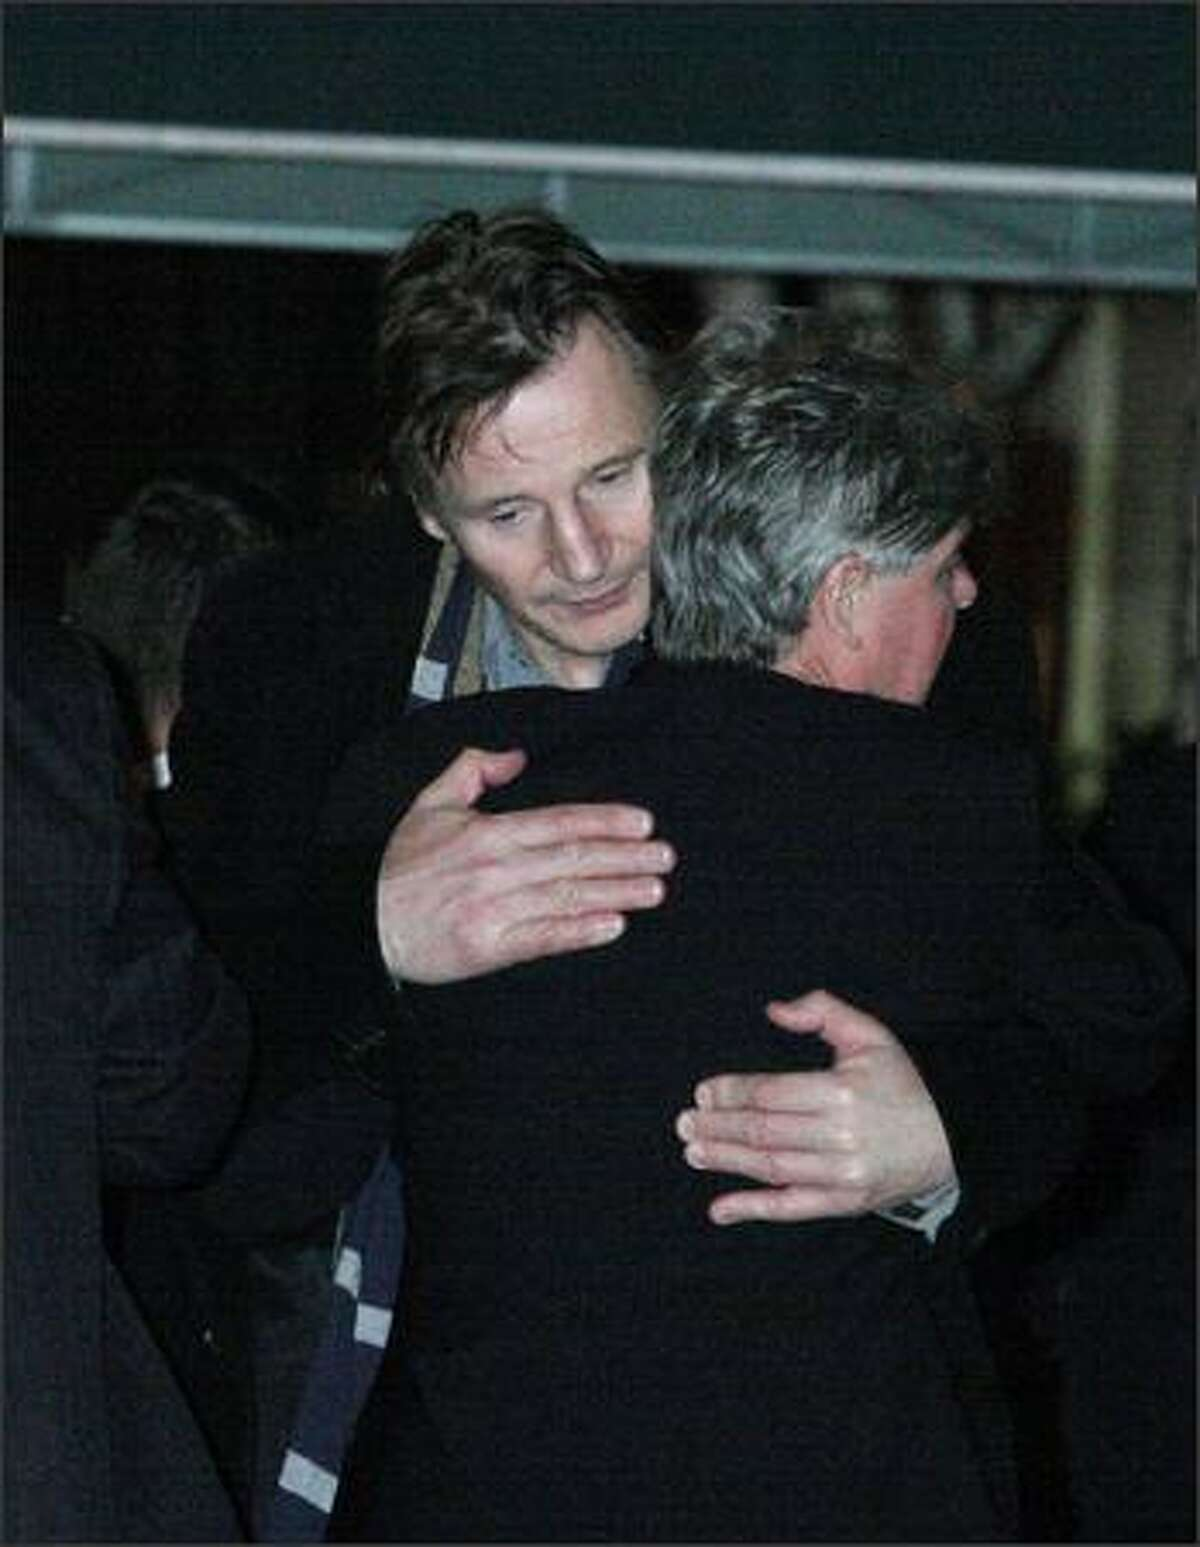 Liam Neeson, left, embraces an unidentified man after exiting the American Irish Historical Society where the body of Neeson's wife, Natasha Richardson, was lying in repose Friday, March 20, 2009 in New York. (AP Photo/Tina Fineberg)